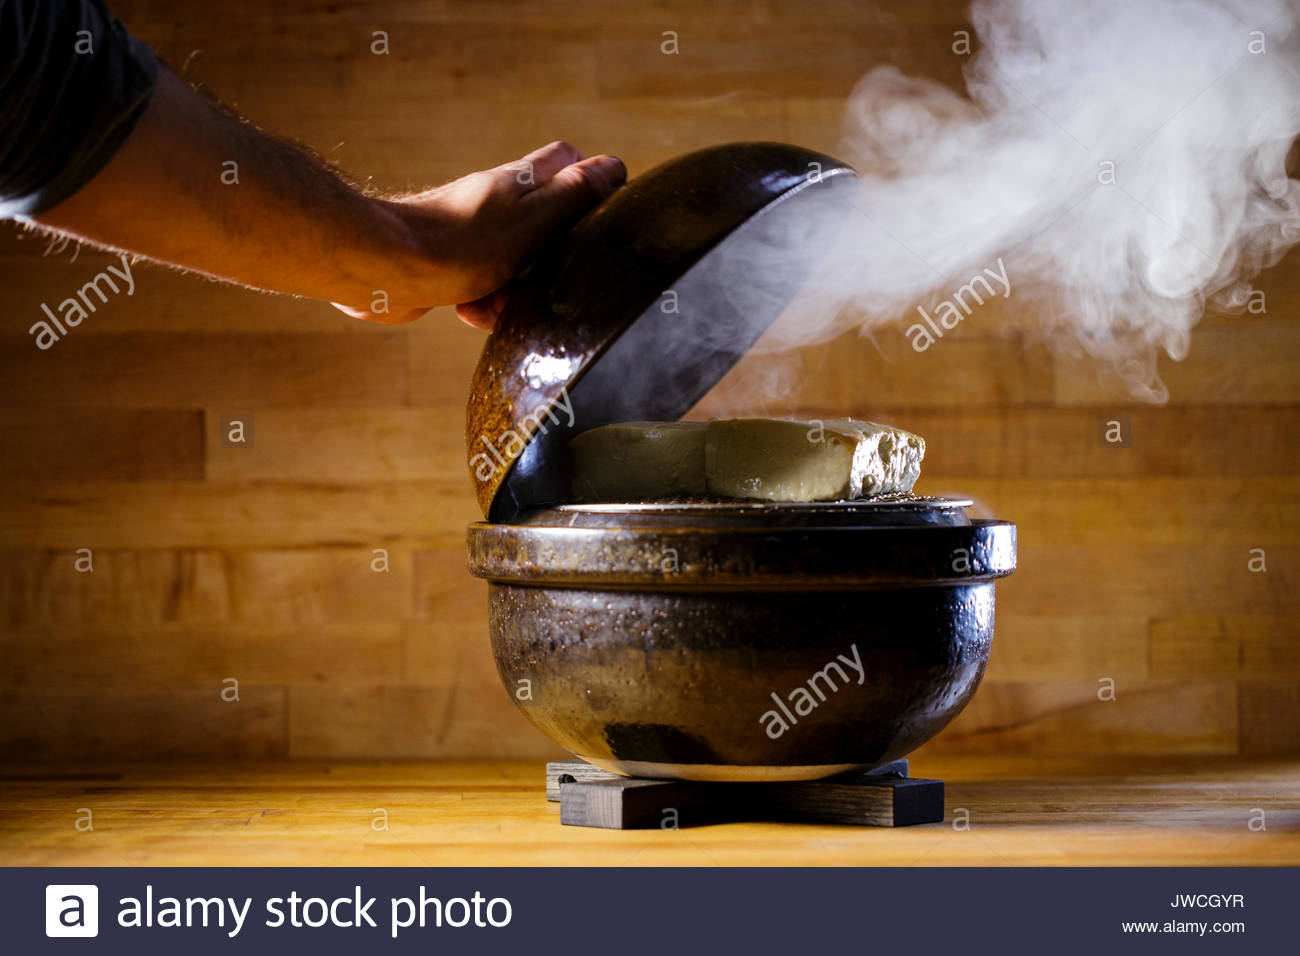 A chef reveals smoked tofu in a donabe, a traditional form of Japanese cookware. - Stock Image